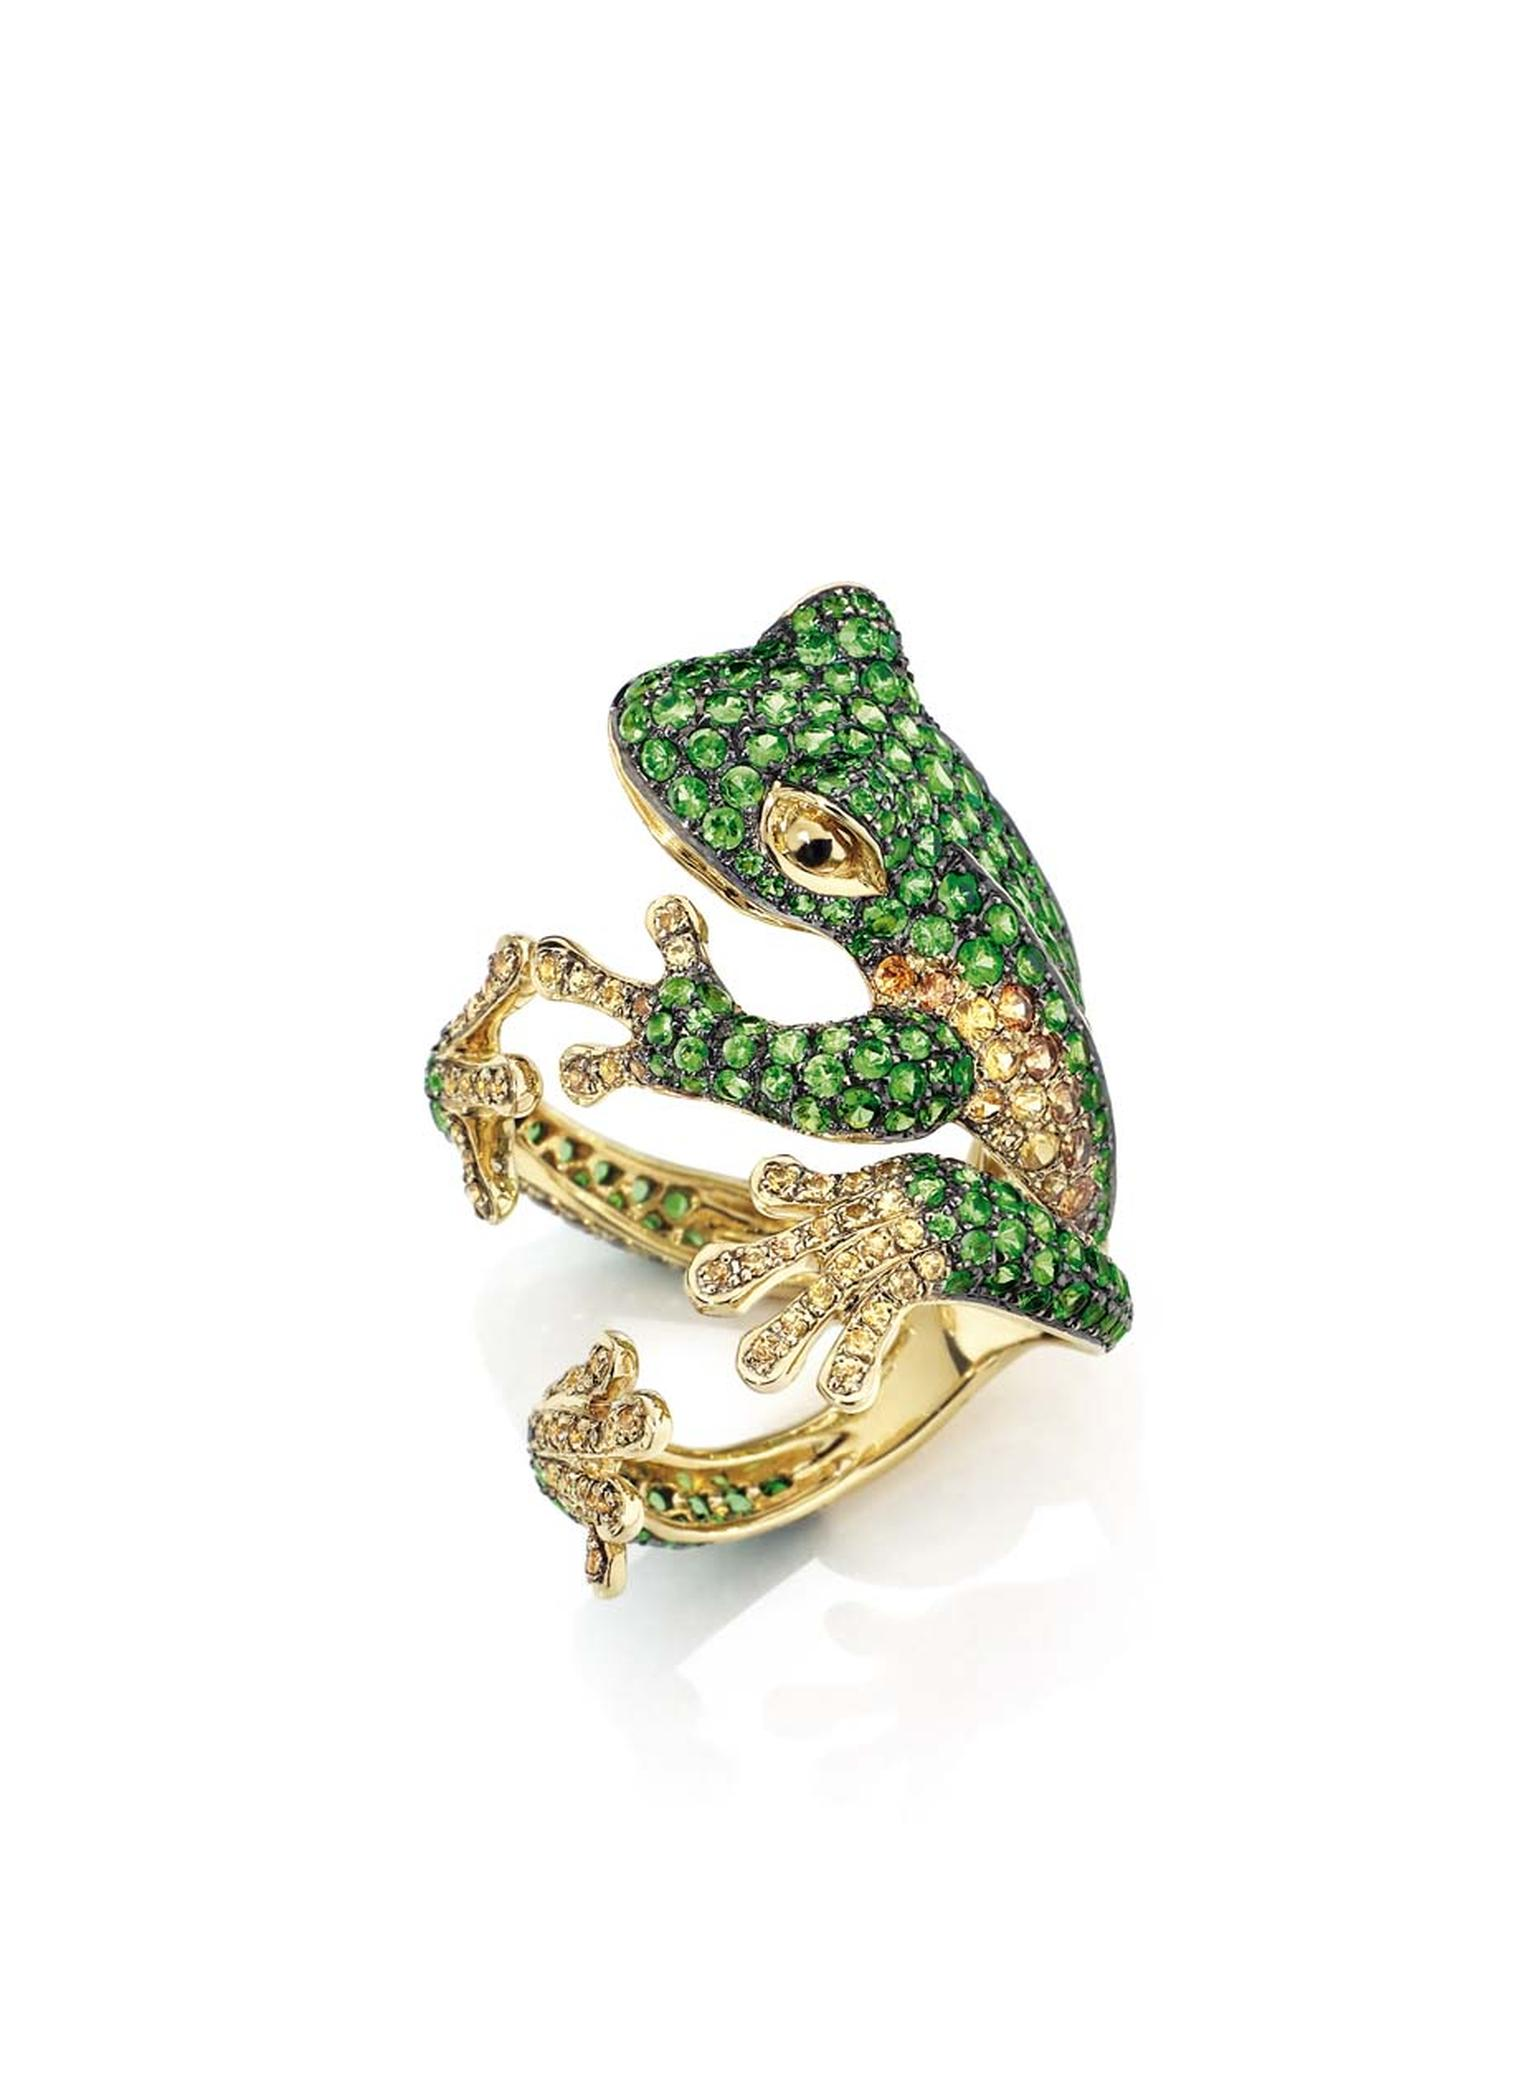 This Morphée Reinette ring in yellow gold, with emeralds and yellow diamonds, perfectly hugs the finger as if a frog has just attached itself to the lucky wearer.